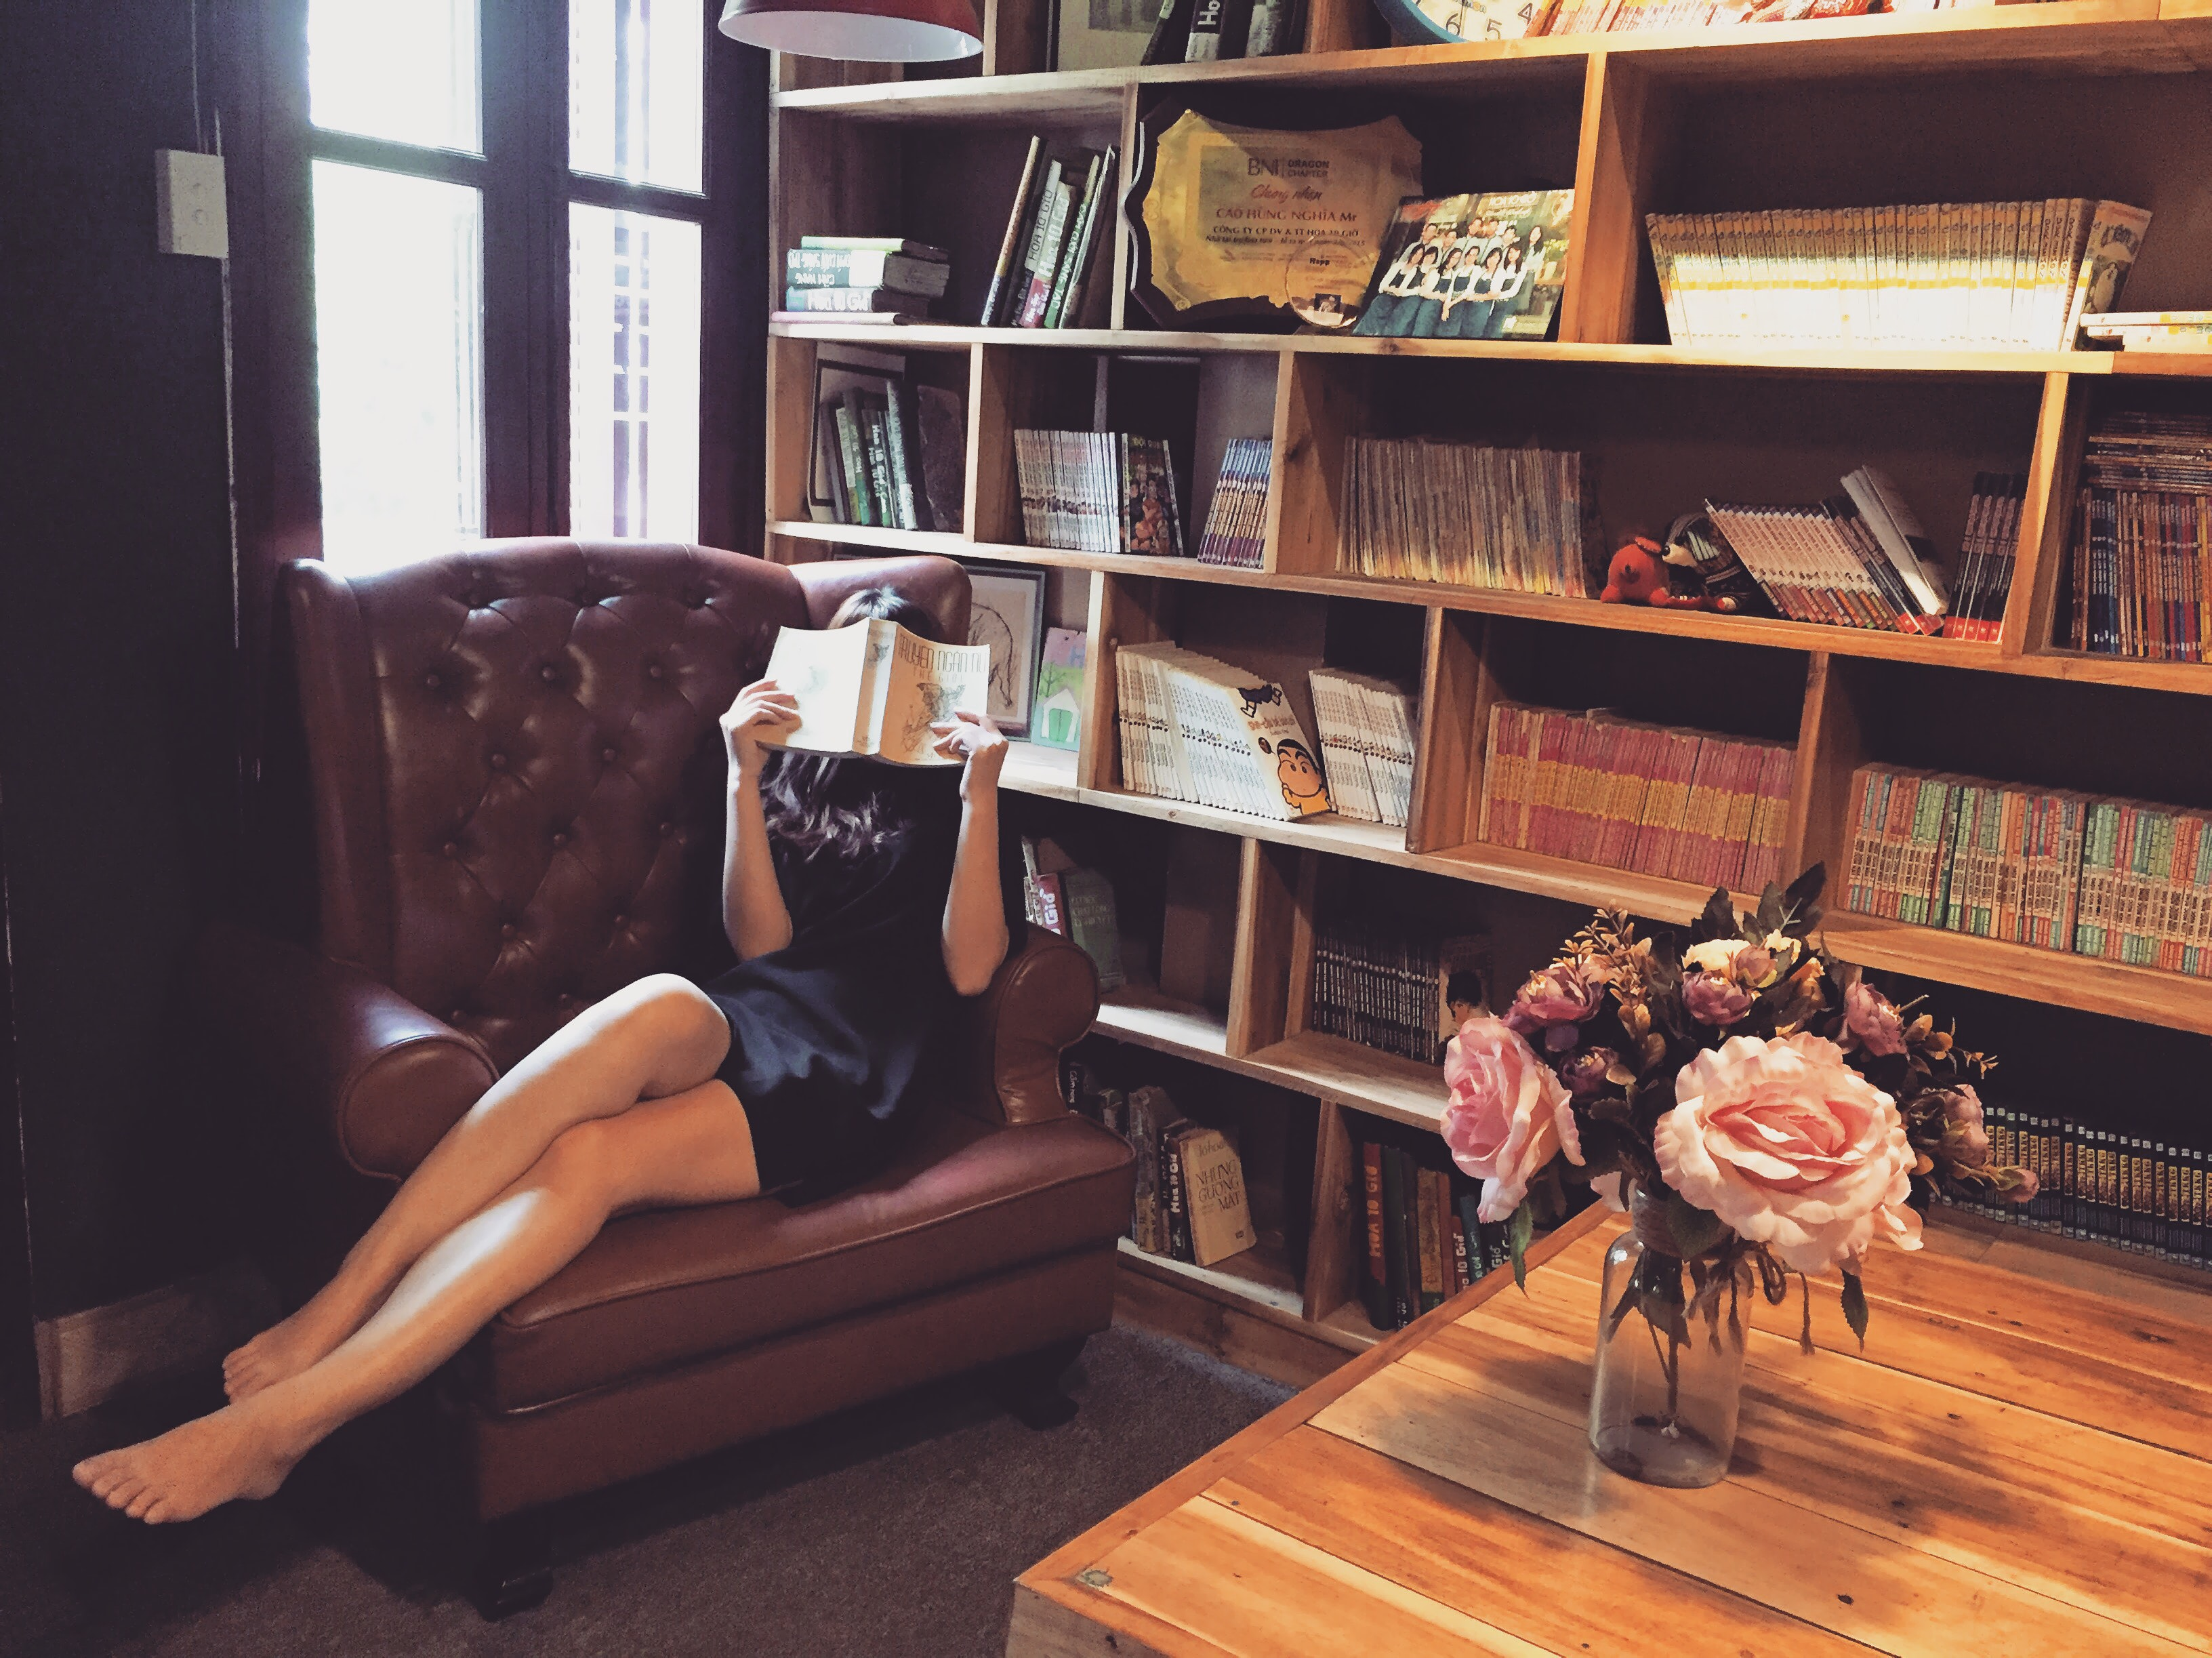 Woman in Black Mini Dress Sitting on Brown Leather Tufted Sofa Chair Beside Brown Wooden Book Shelf, Asian, Books, Couch, Flower vase, HQ Photo